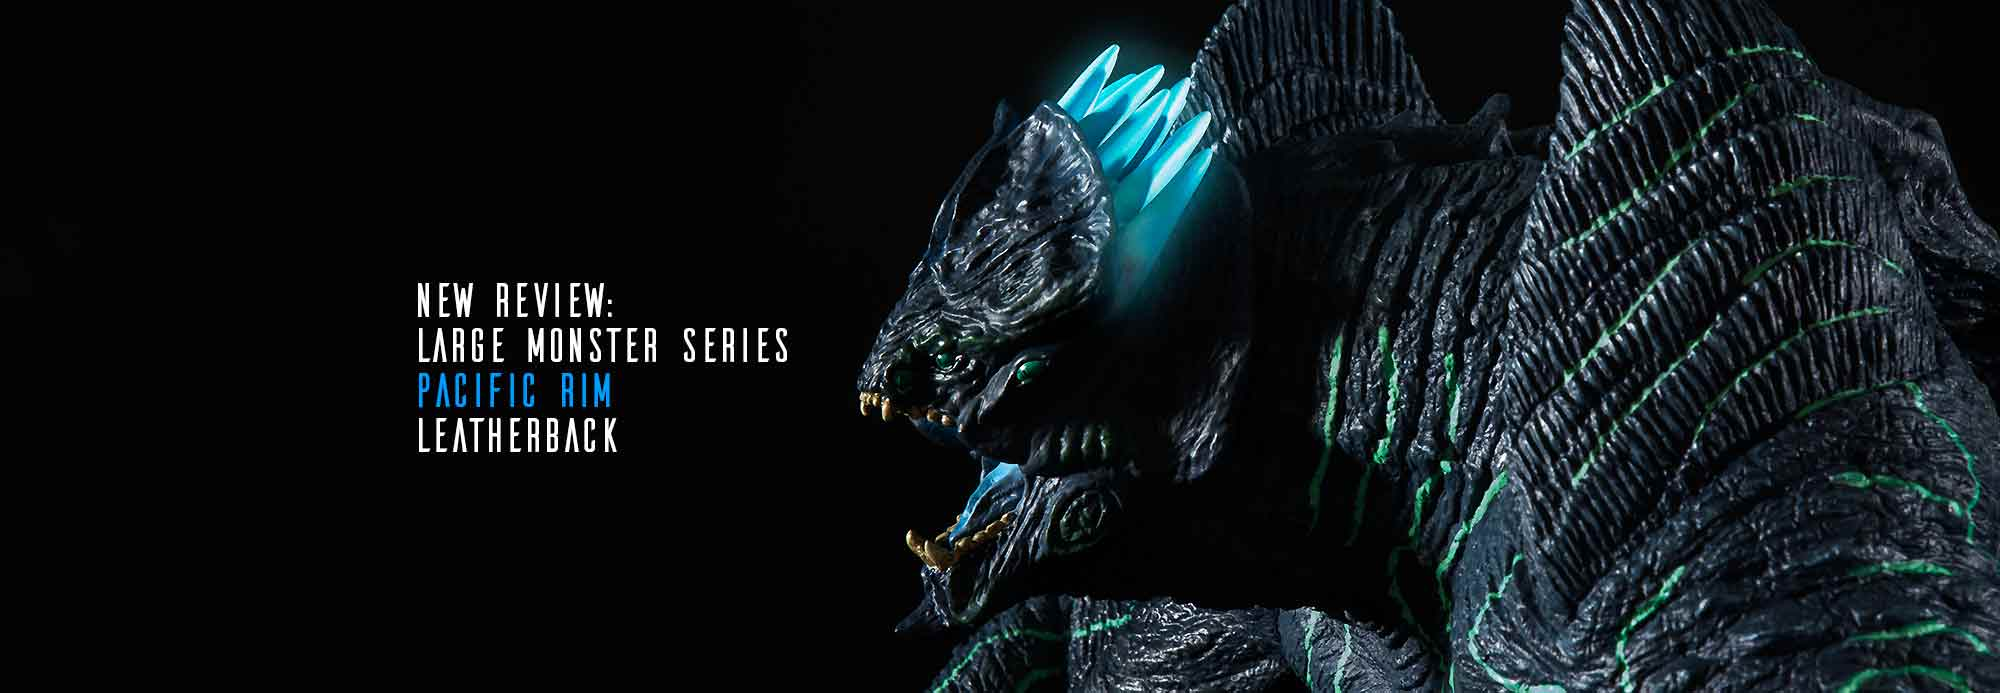 New Review: X-Plus Large Monster Series Pacific Rim Leatherback.